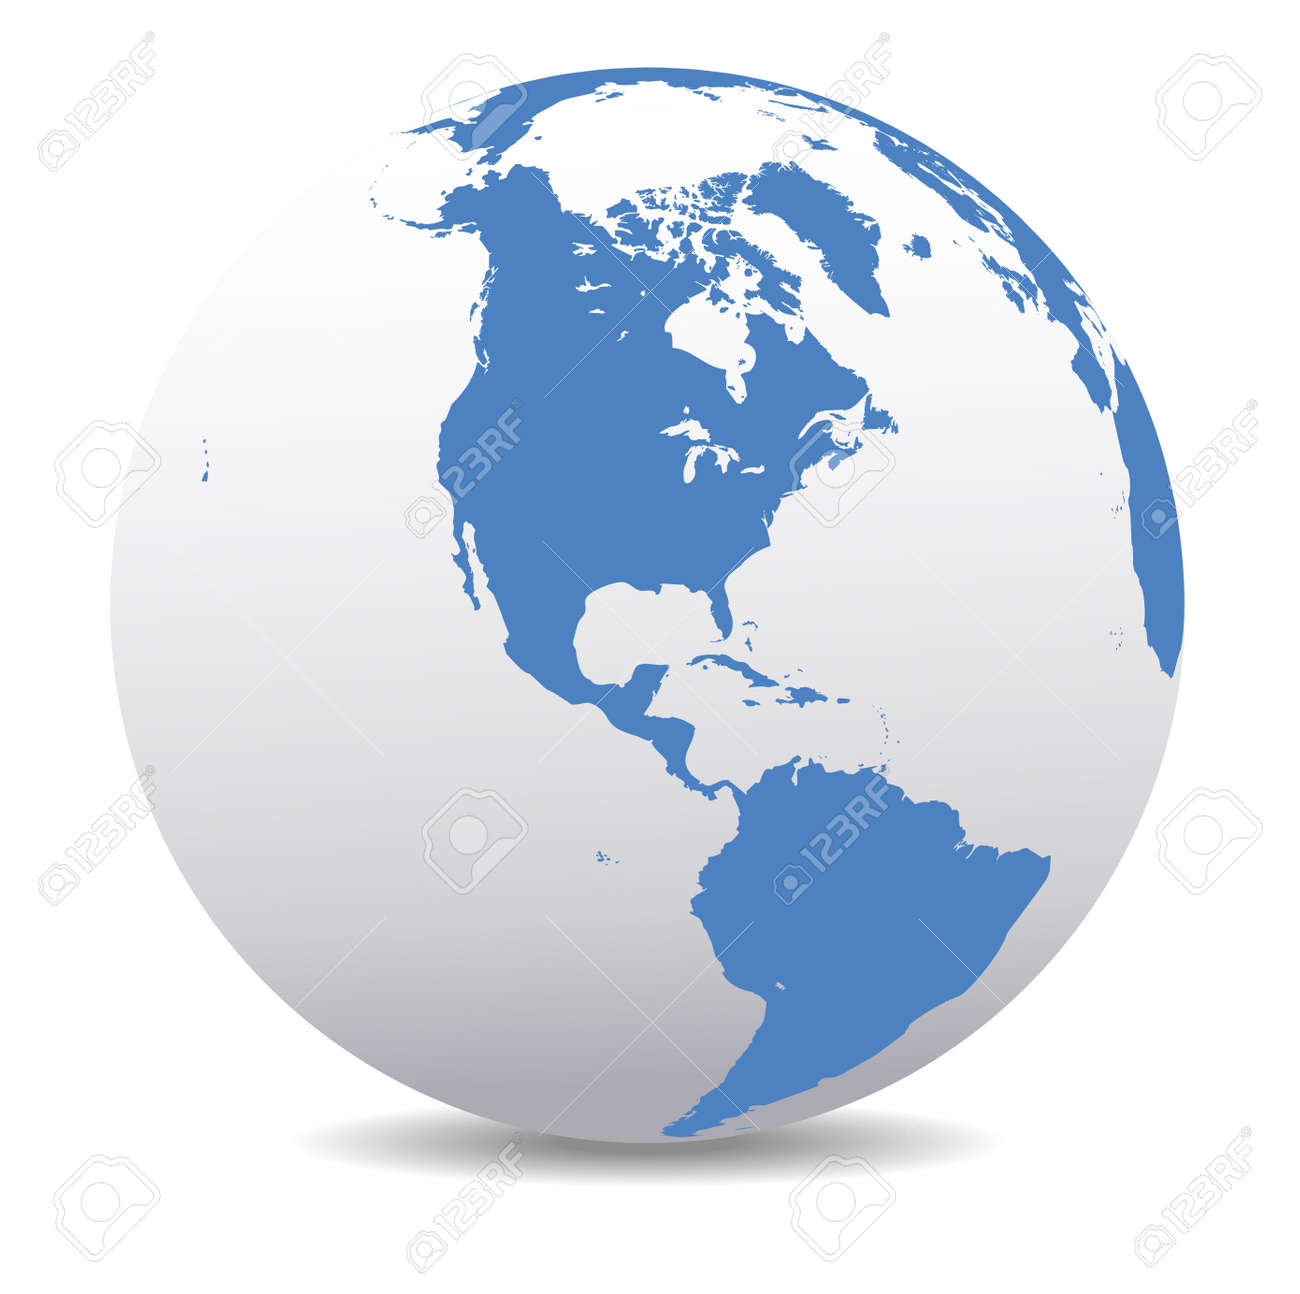 North and South America Global World - 33288847